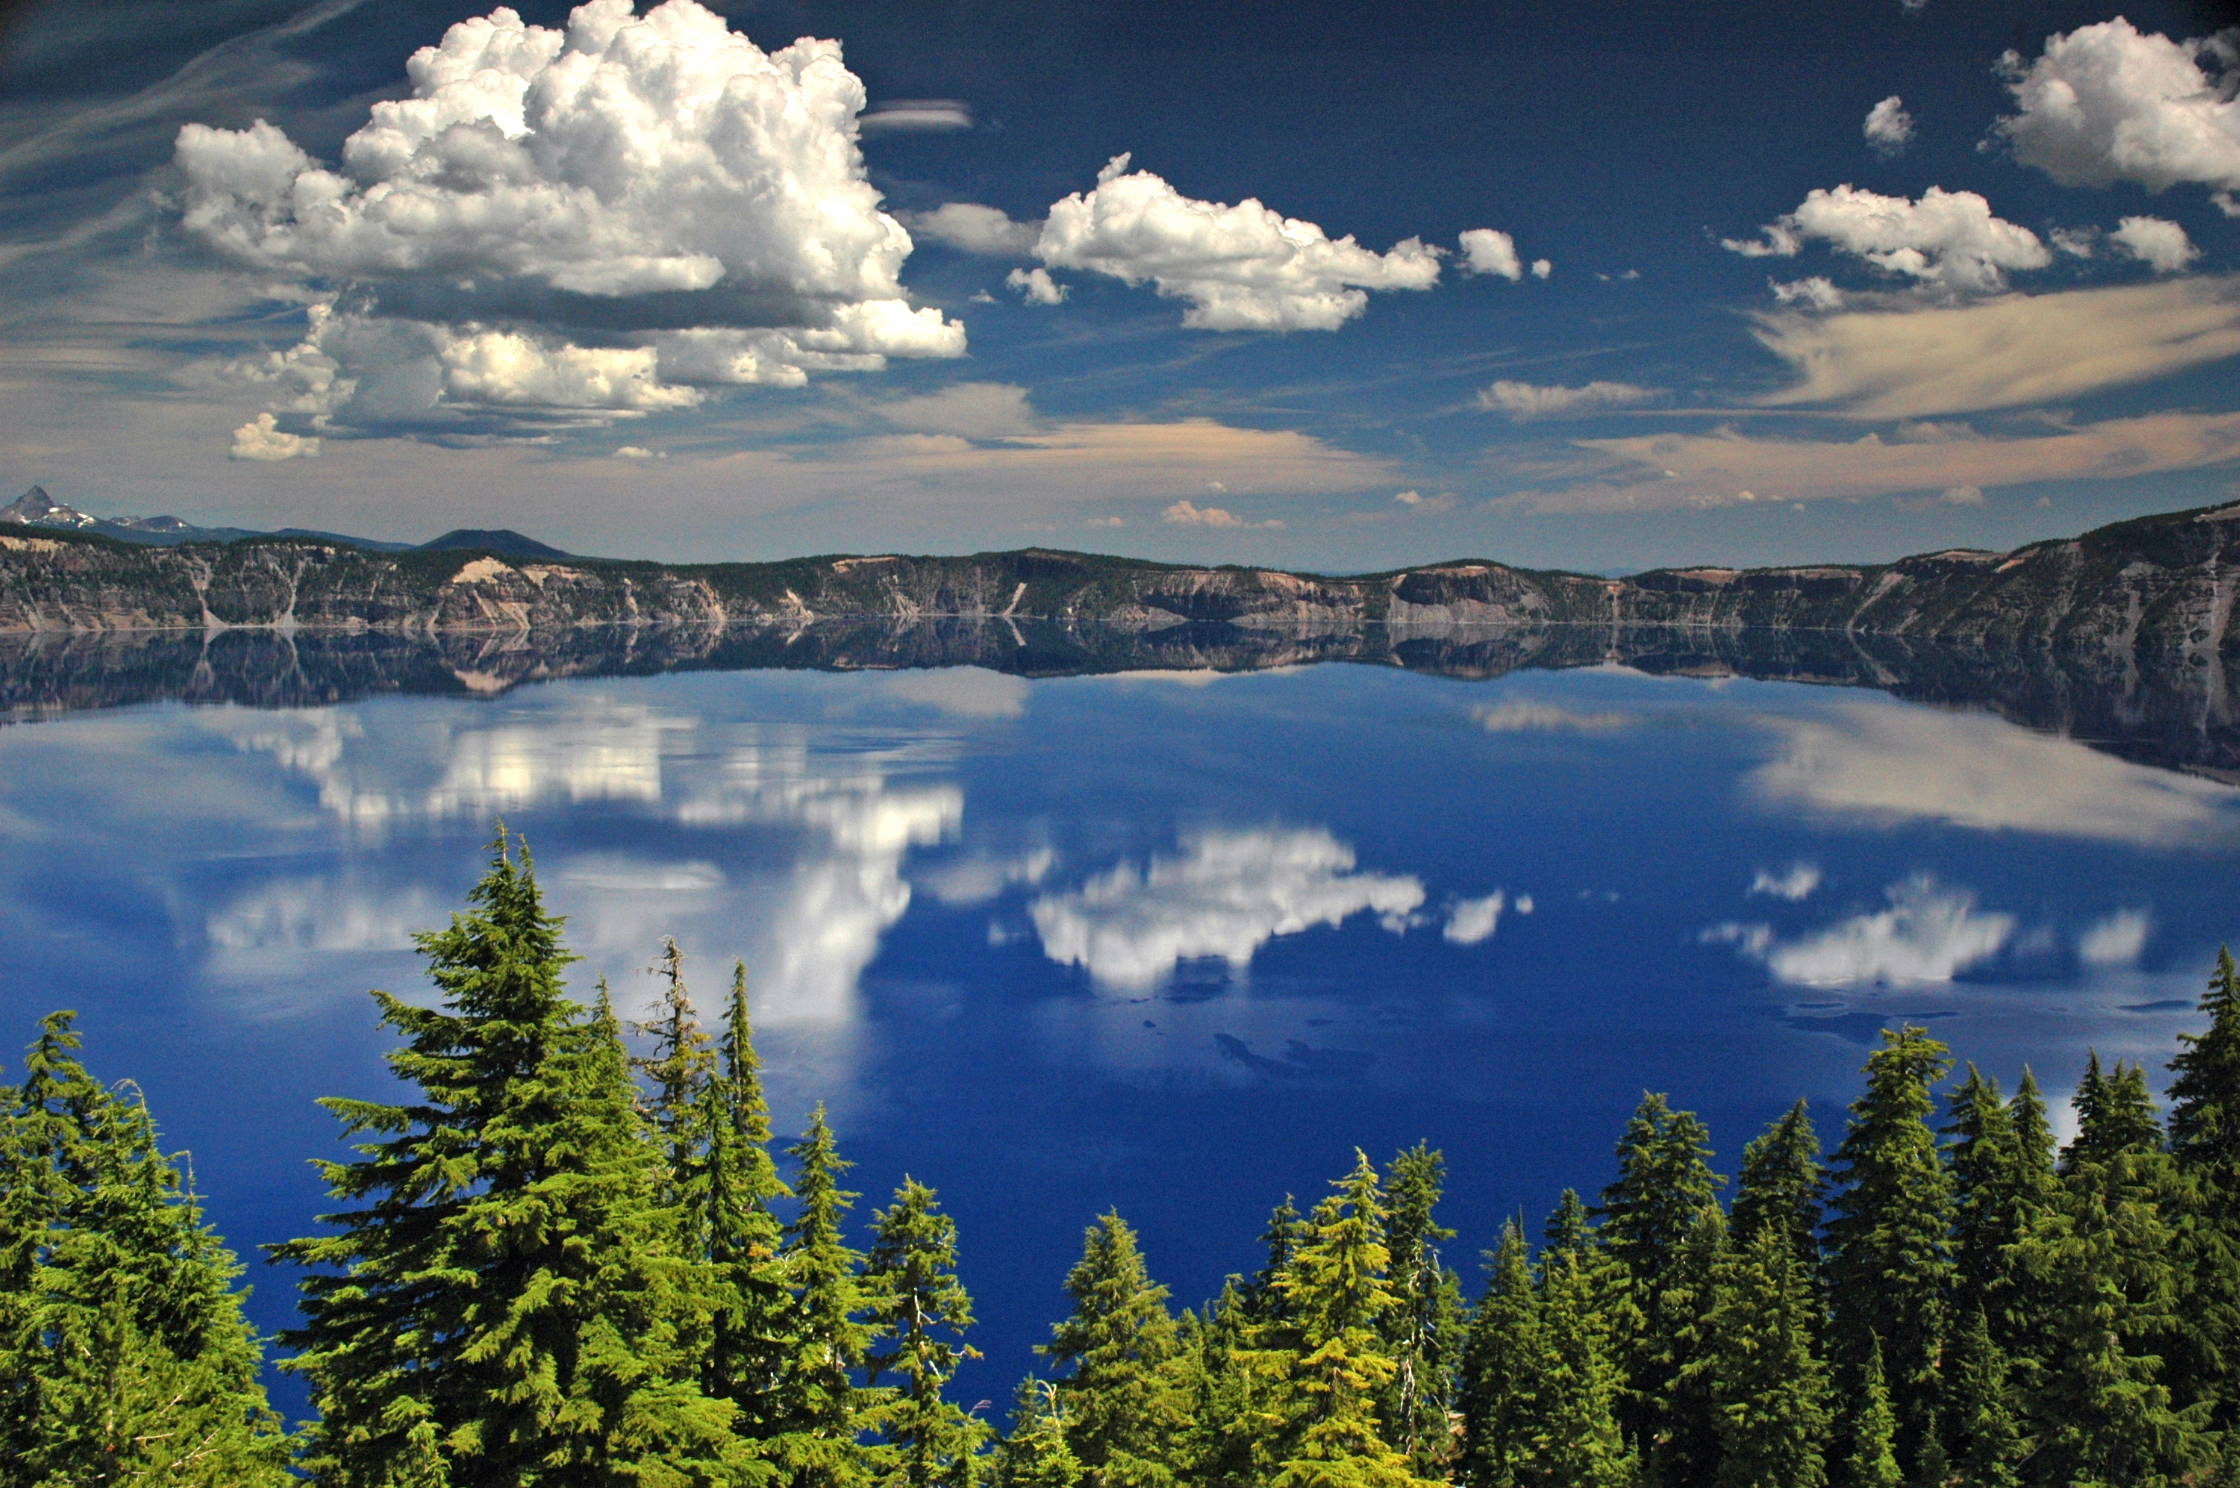 ✮ Twilight falls over Oregon's Crater Lake - A view of the clear blue water of Crater Lake